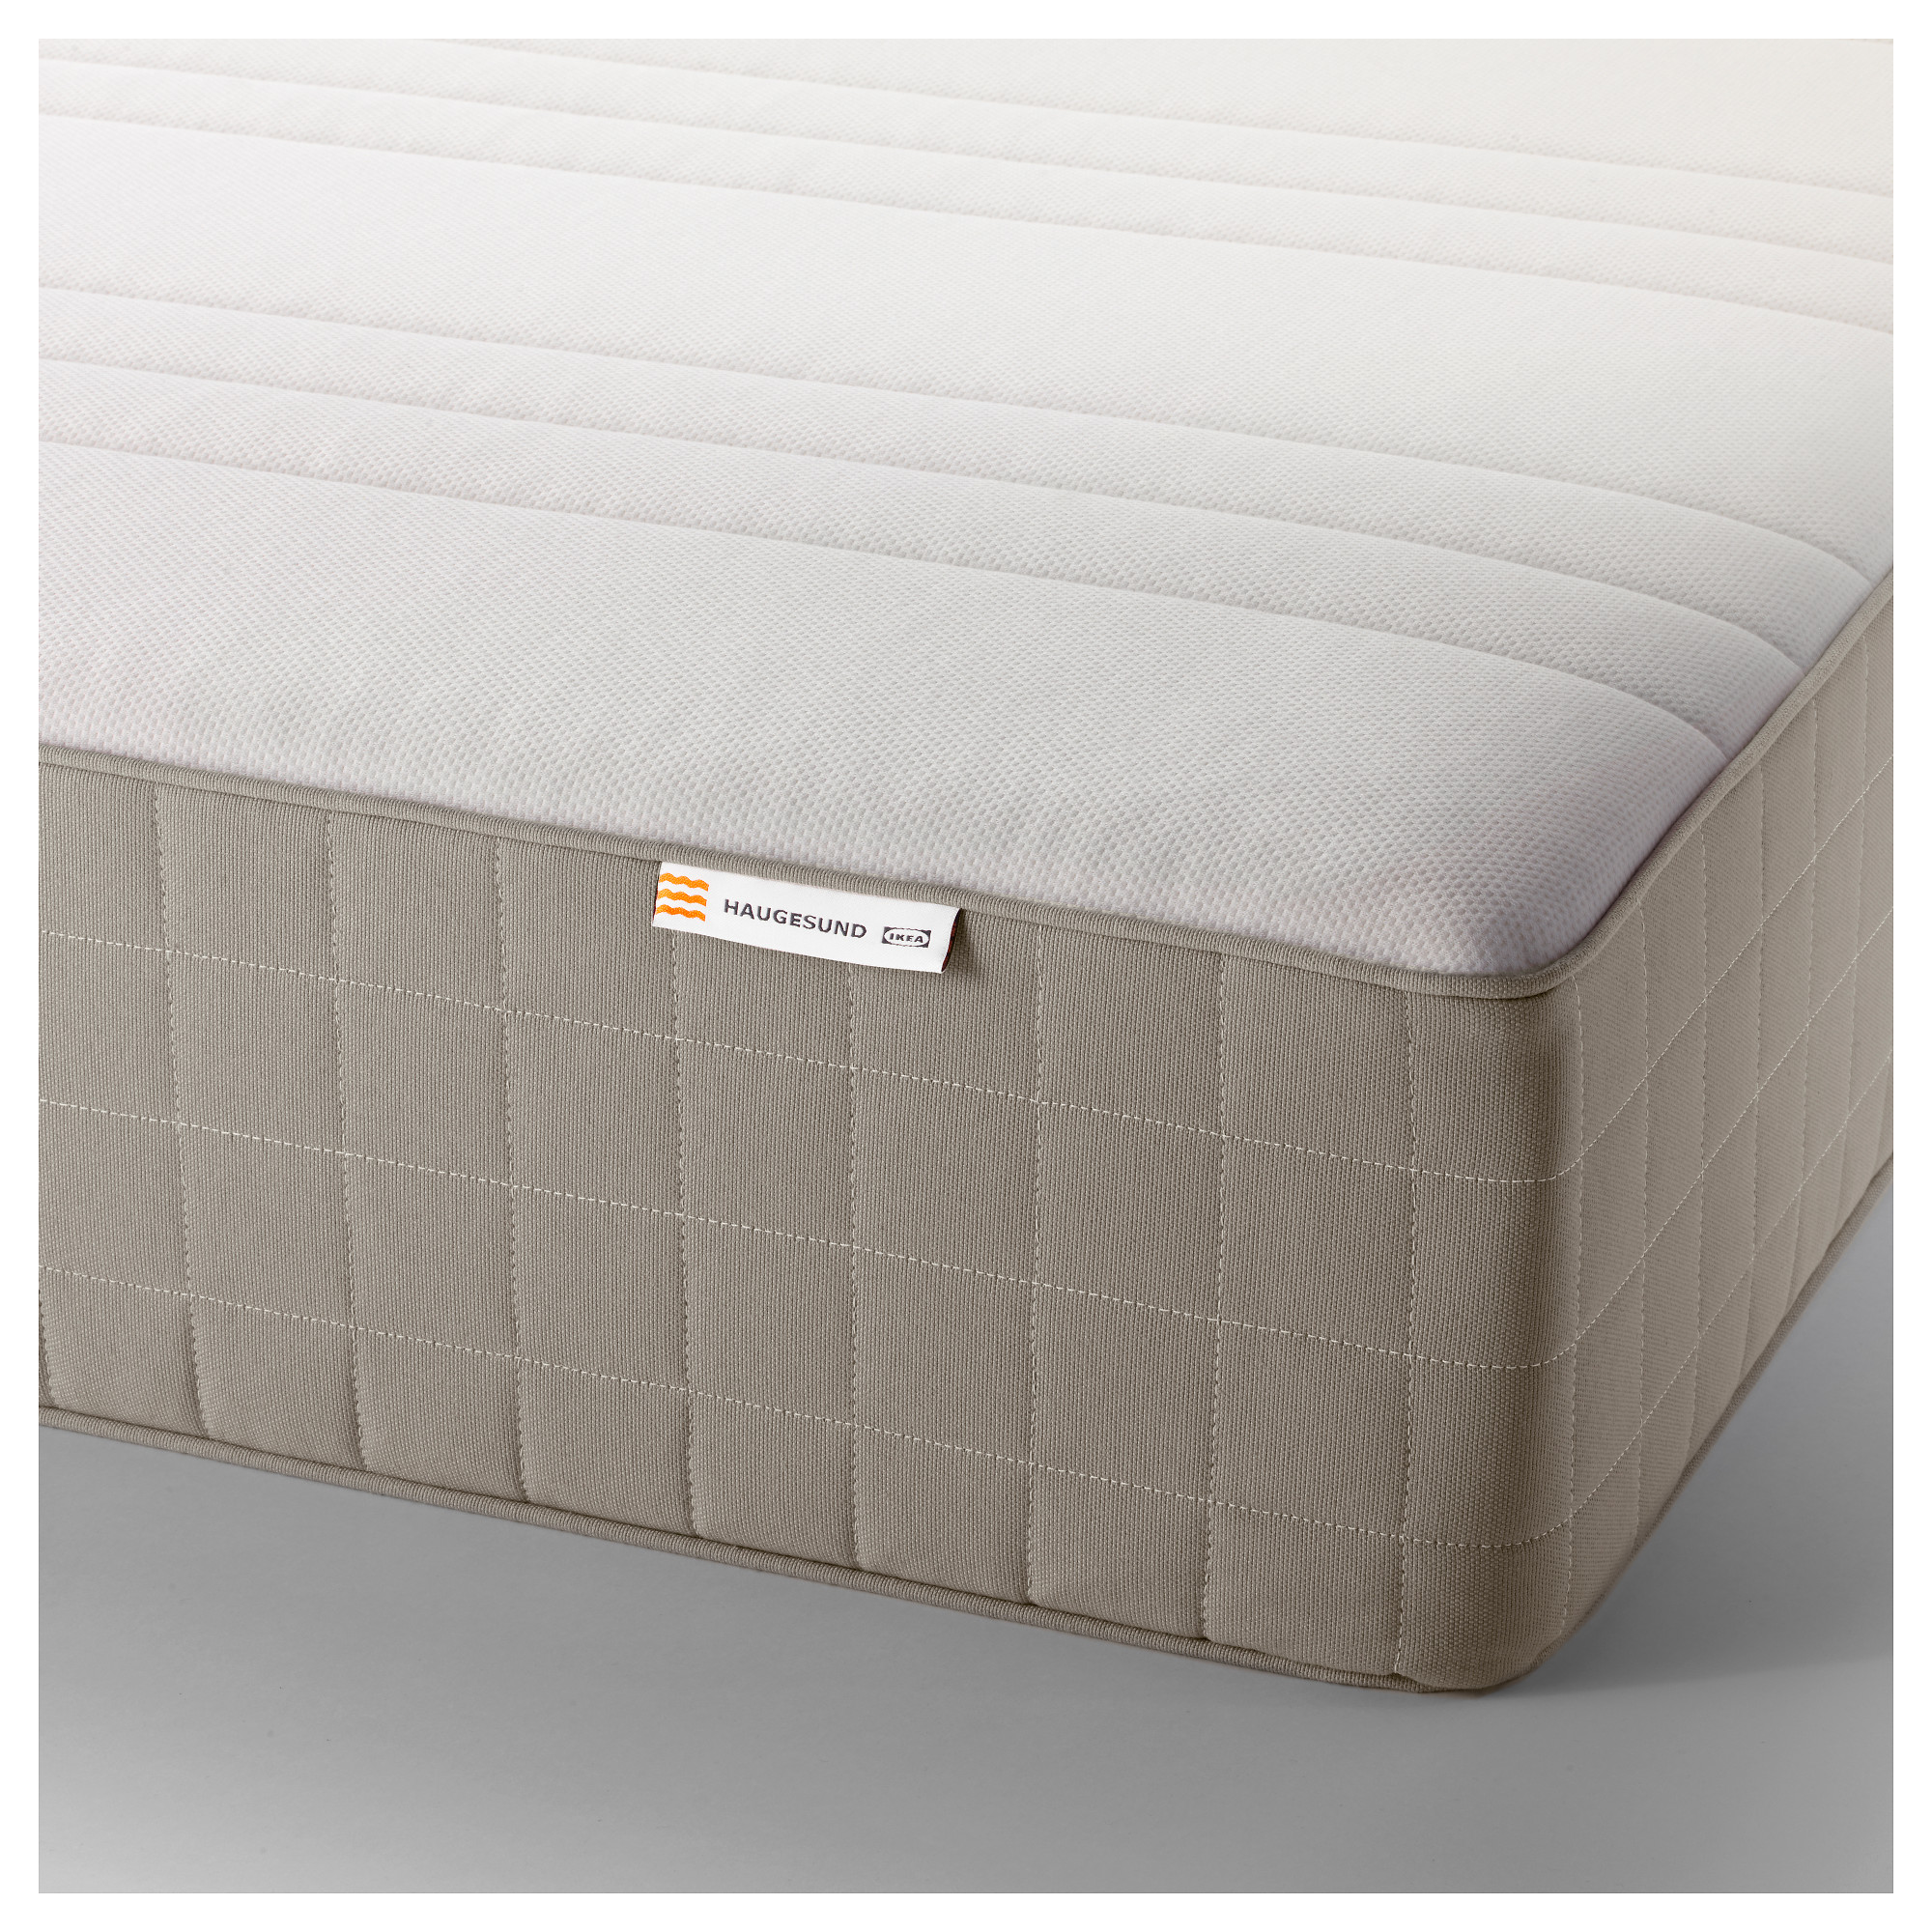 single mattresses en king fillings layer medium comfort soft firm double sprung a hyllestad adds support generous ikea super gb white and pocket of products mattress